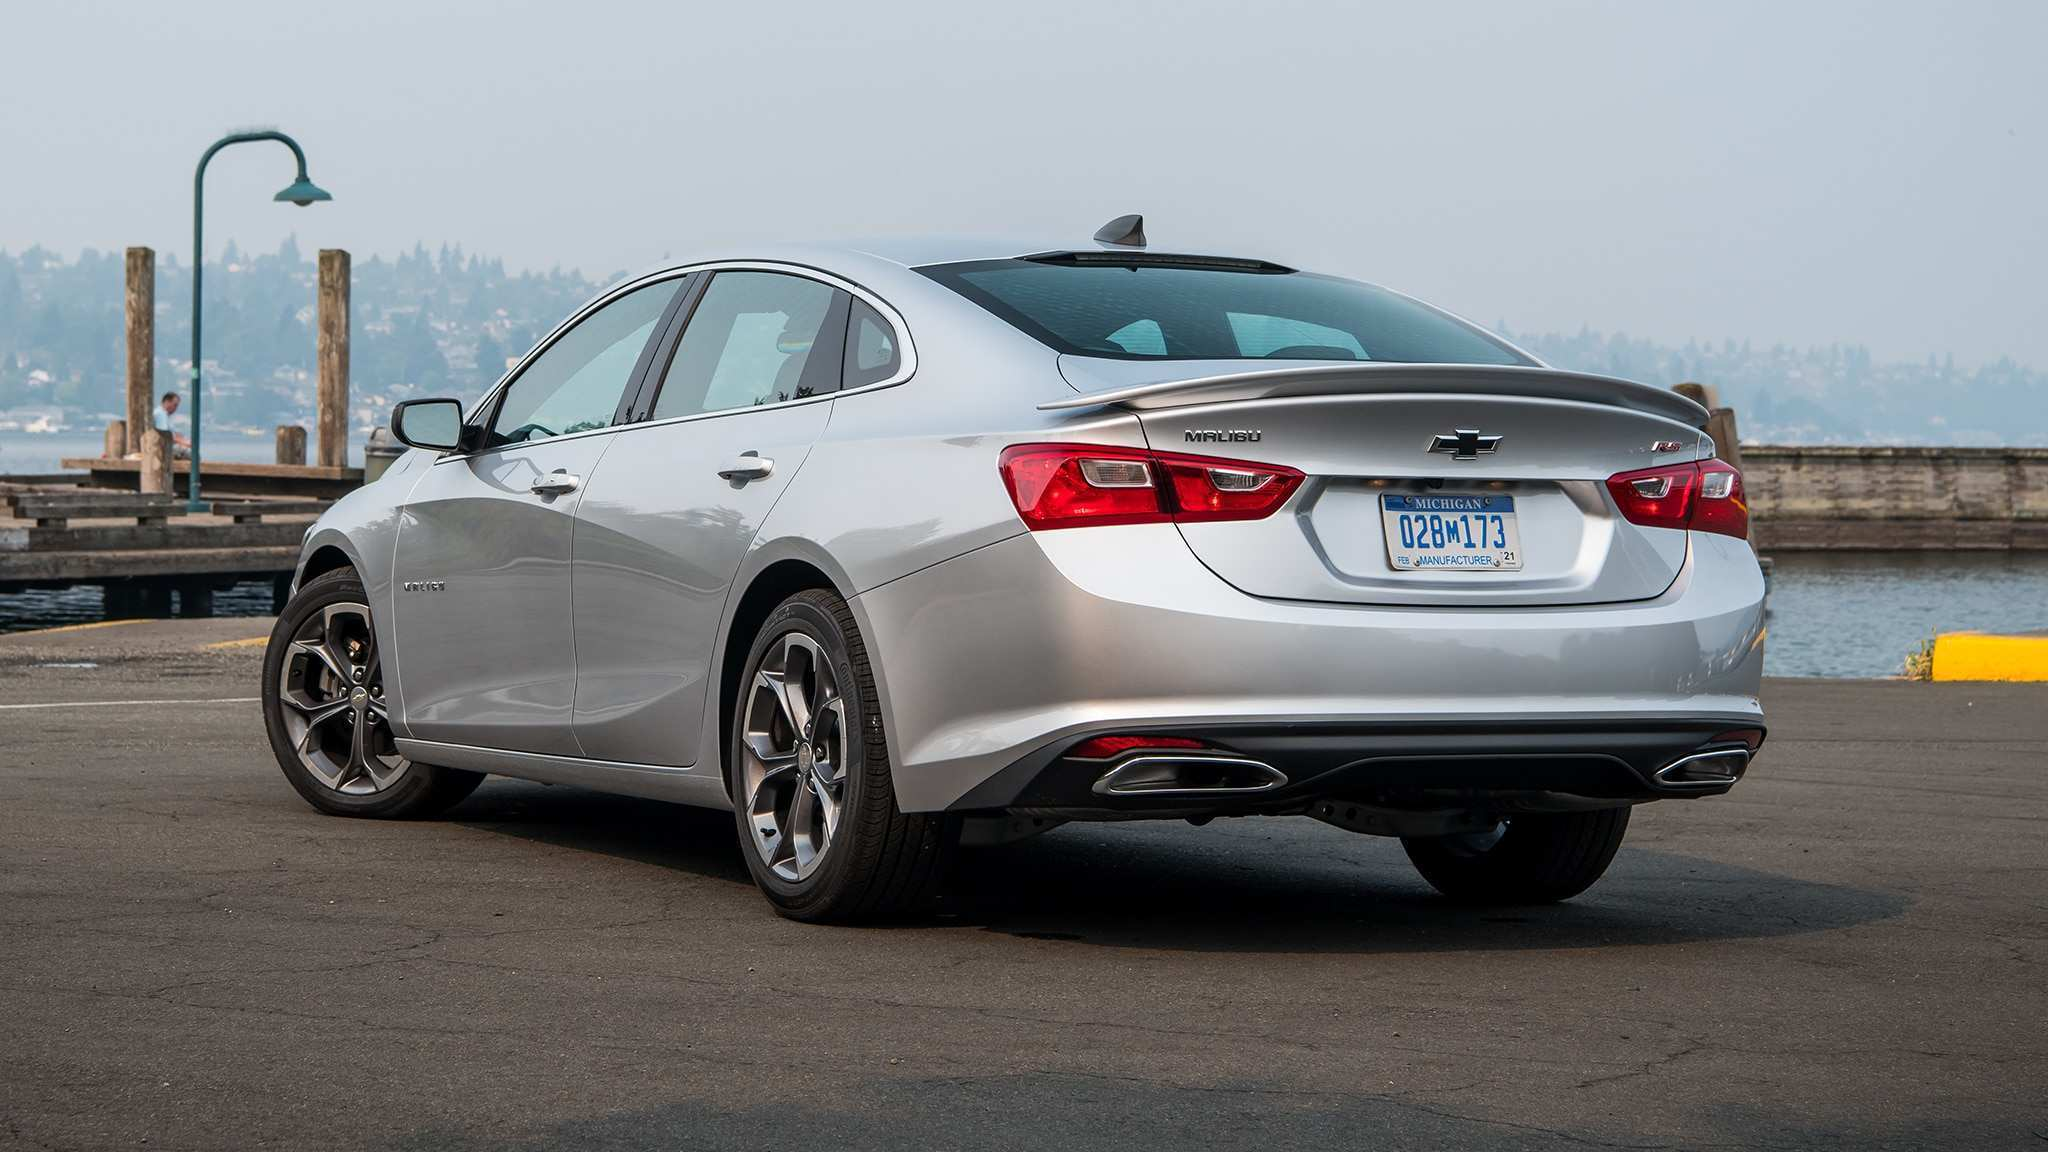 51 Great The Chevrolet Malibu 2019 Price Rumors Prices by The Chevrolet Malibu 2019 Price Rumors